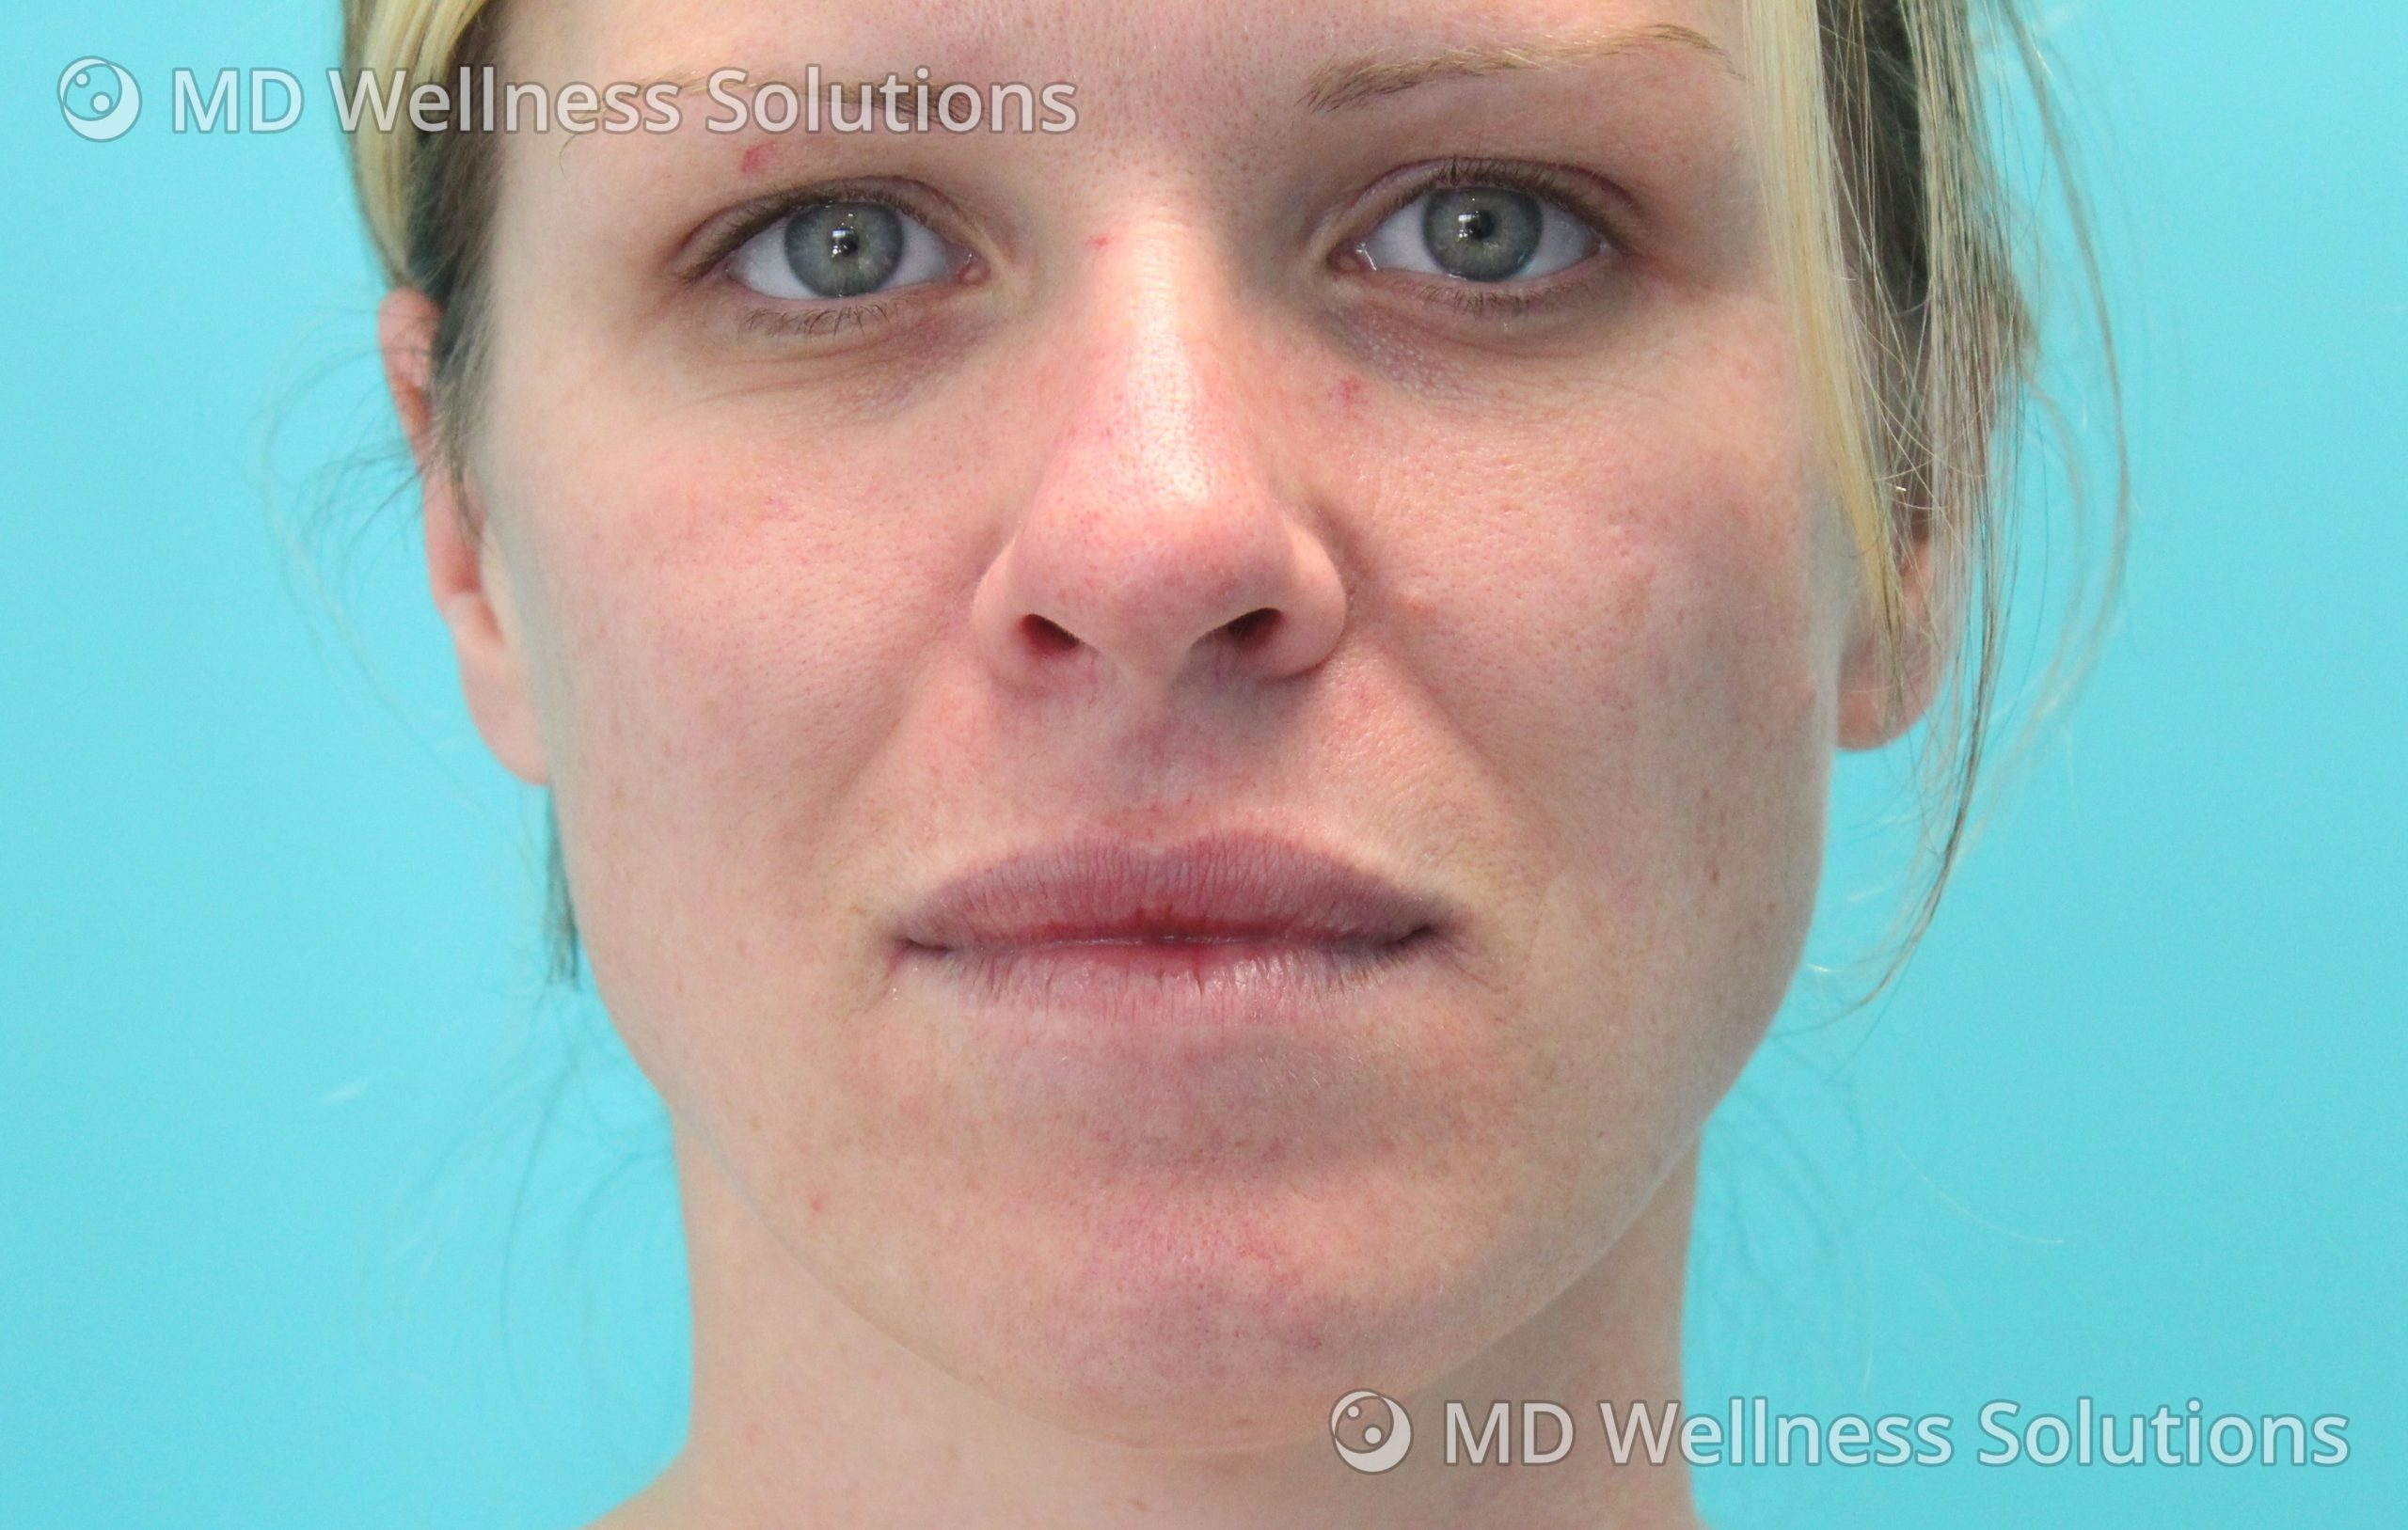 25-34 year old woman before lip filler treatment